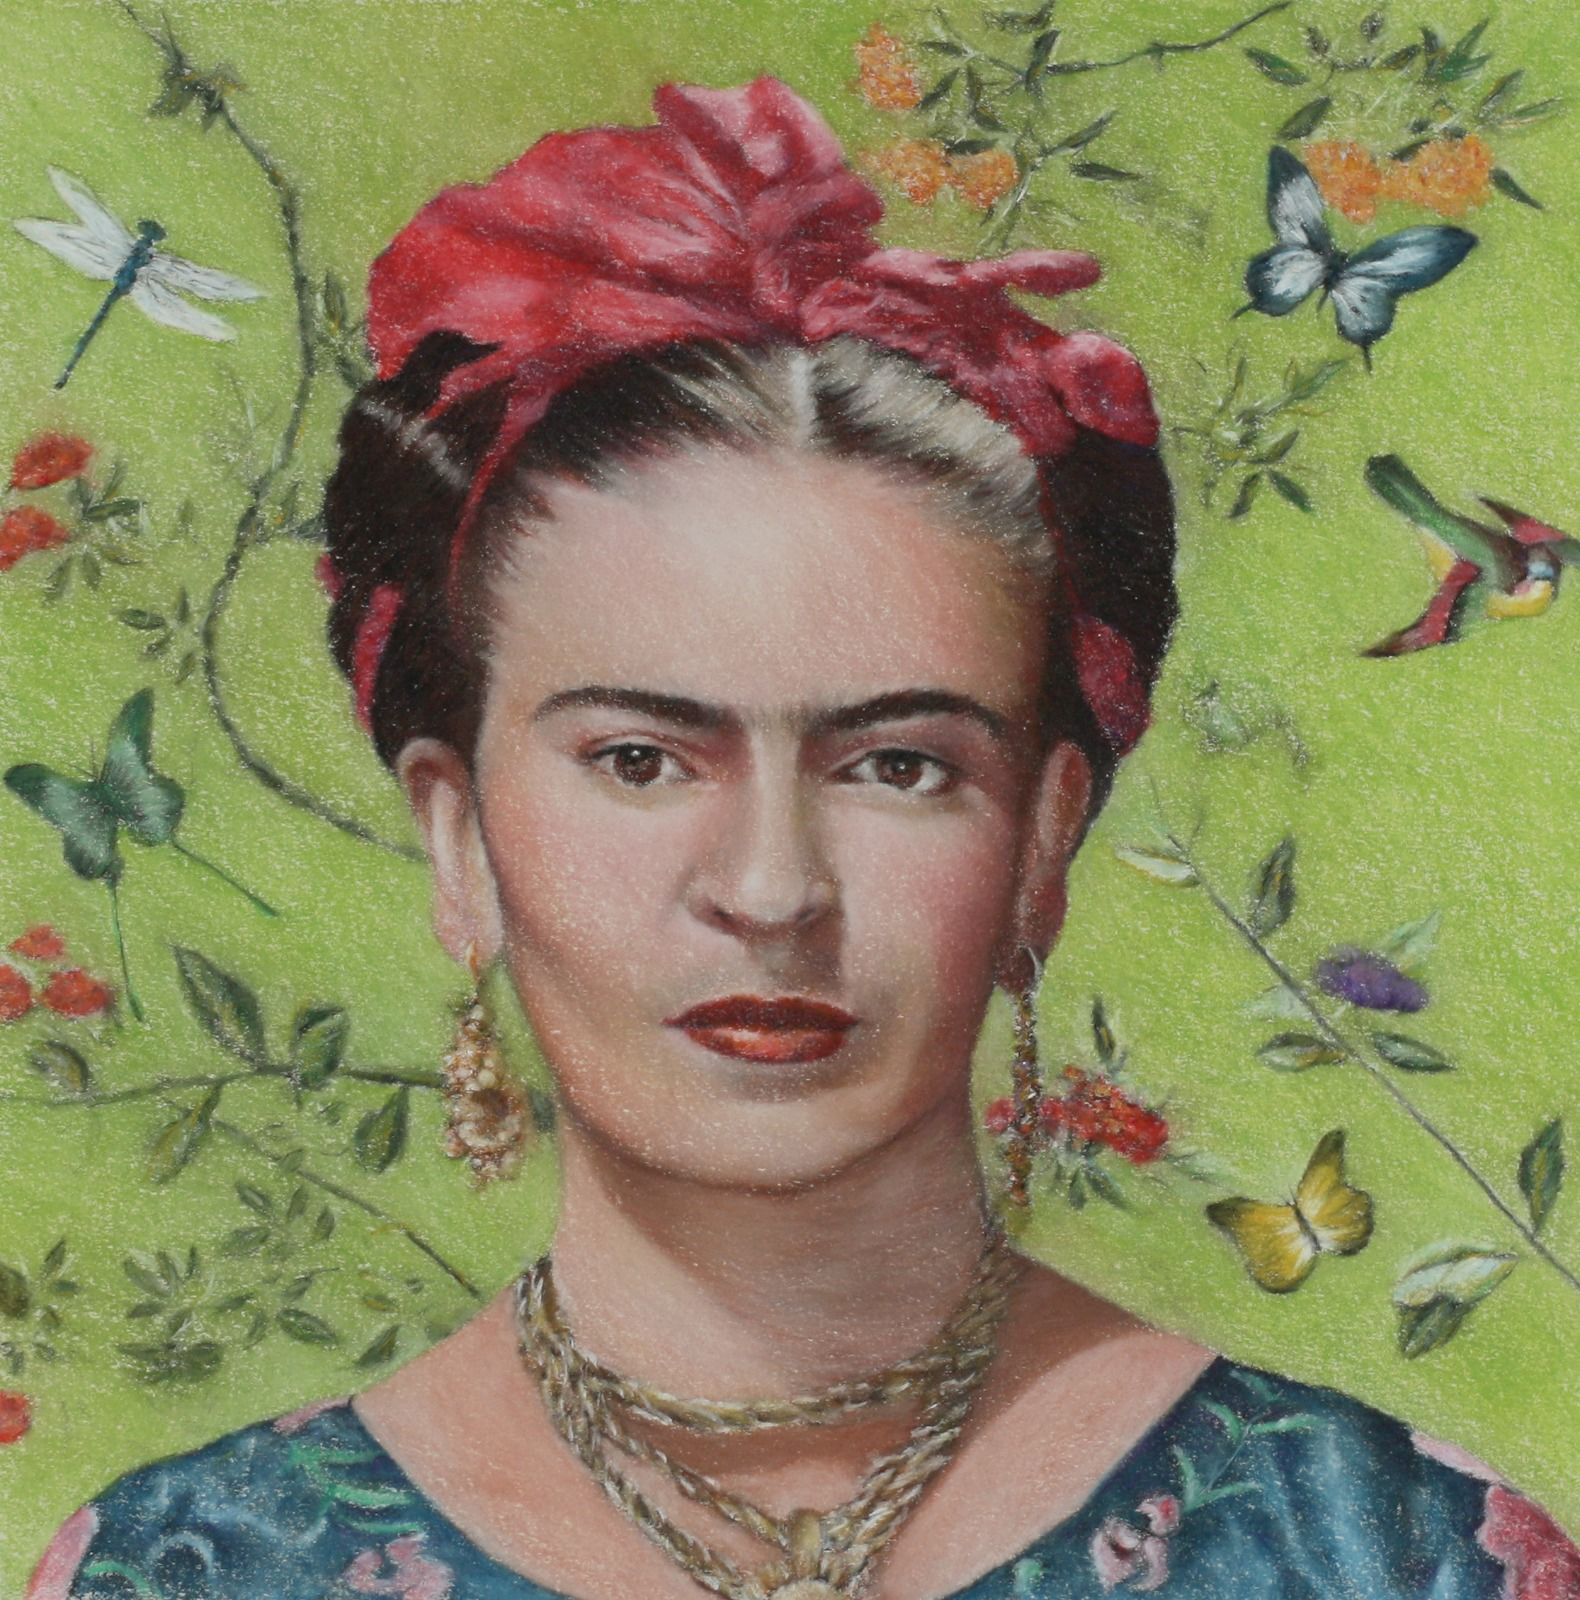 Frida Kahlo Green background